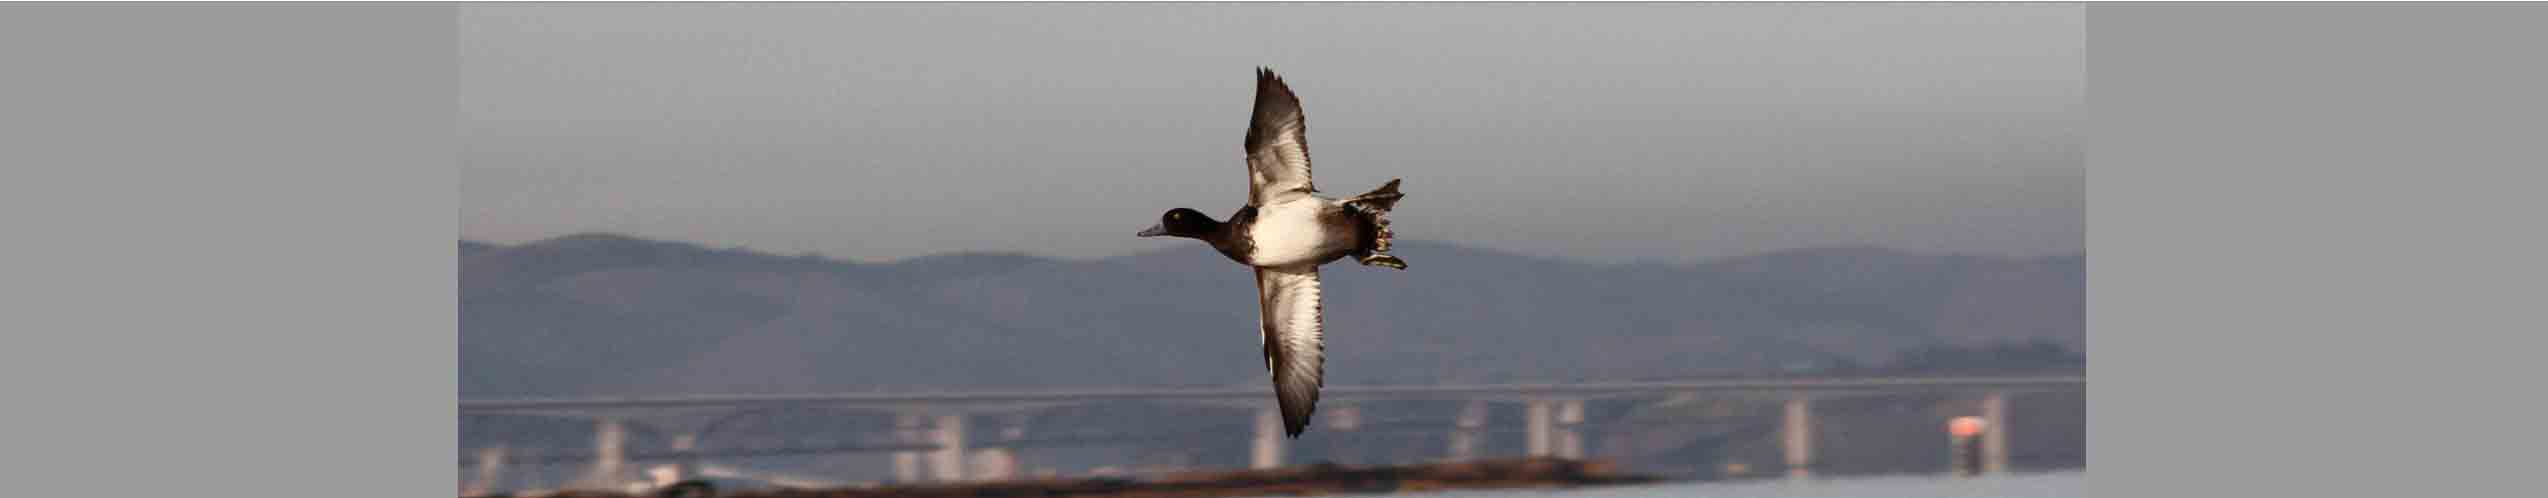 duck-flying-alone-9